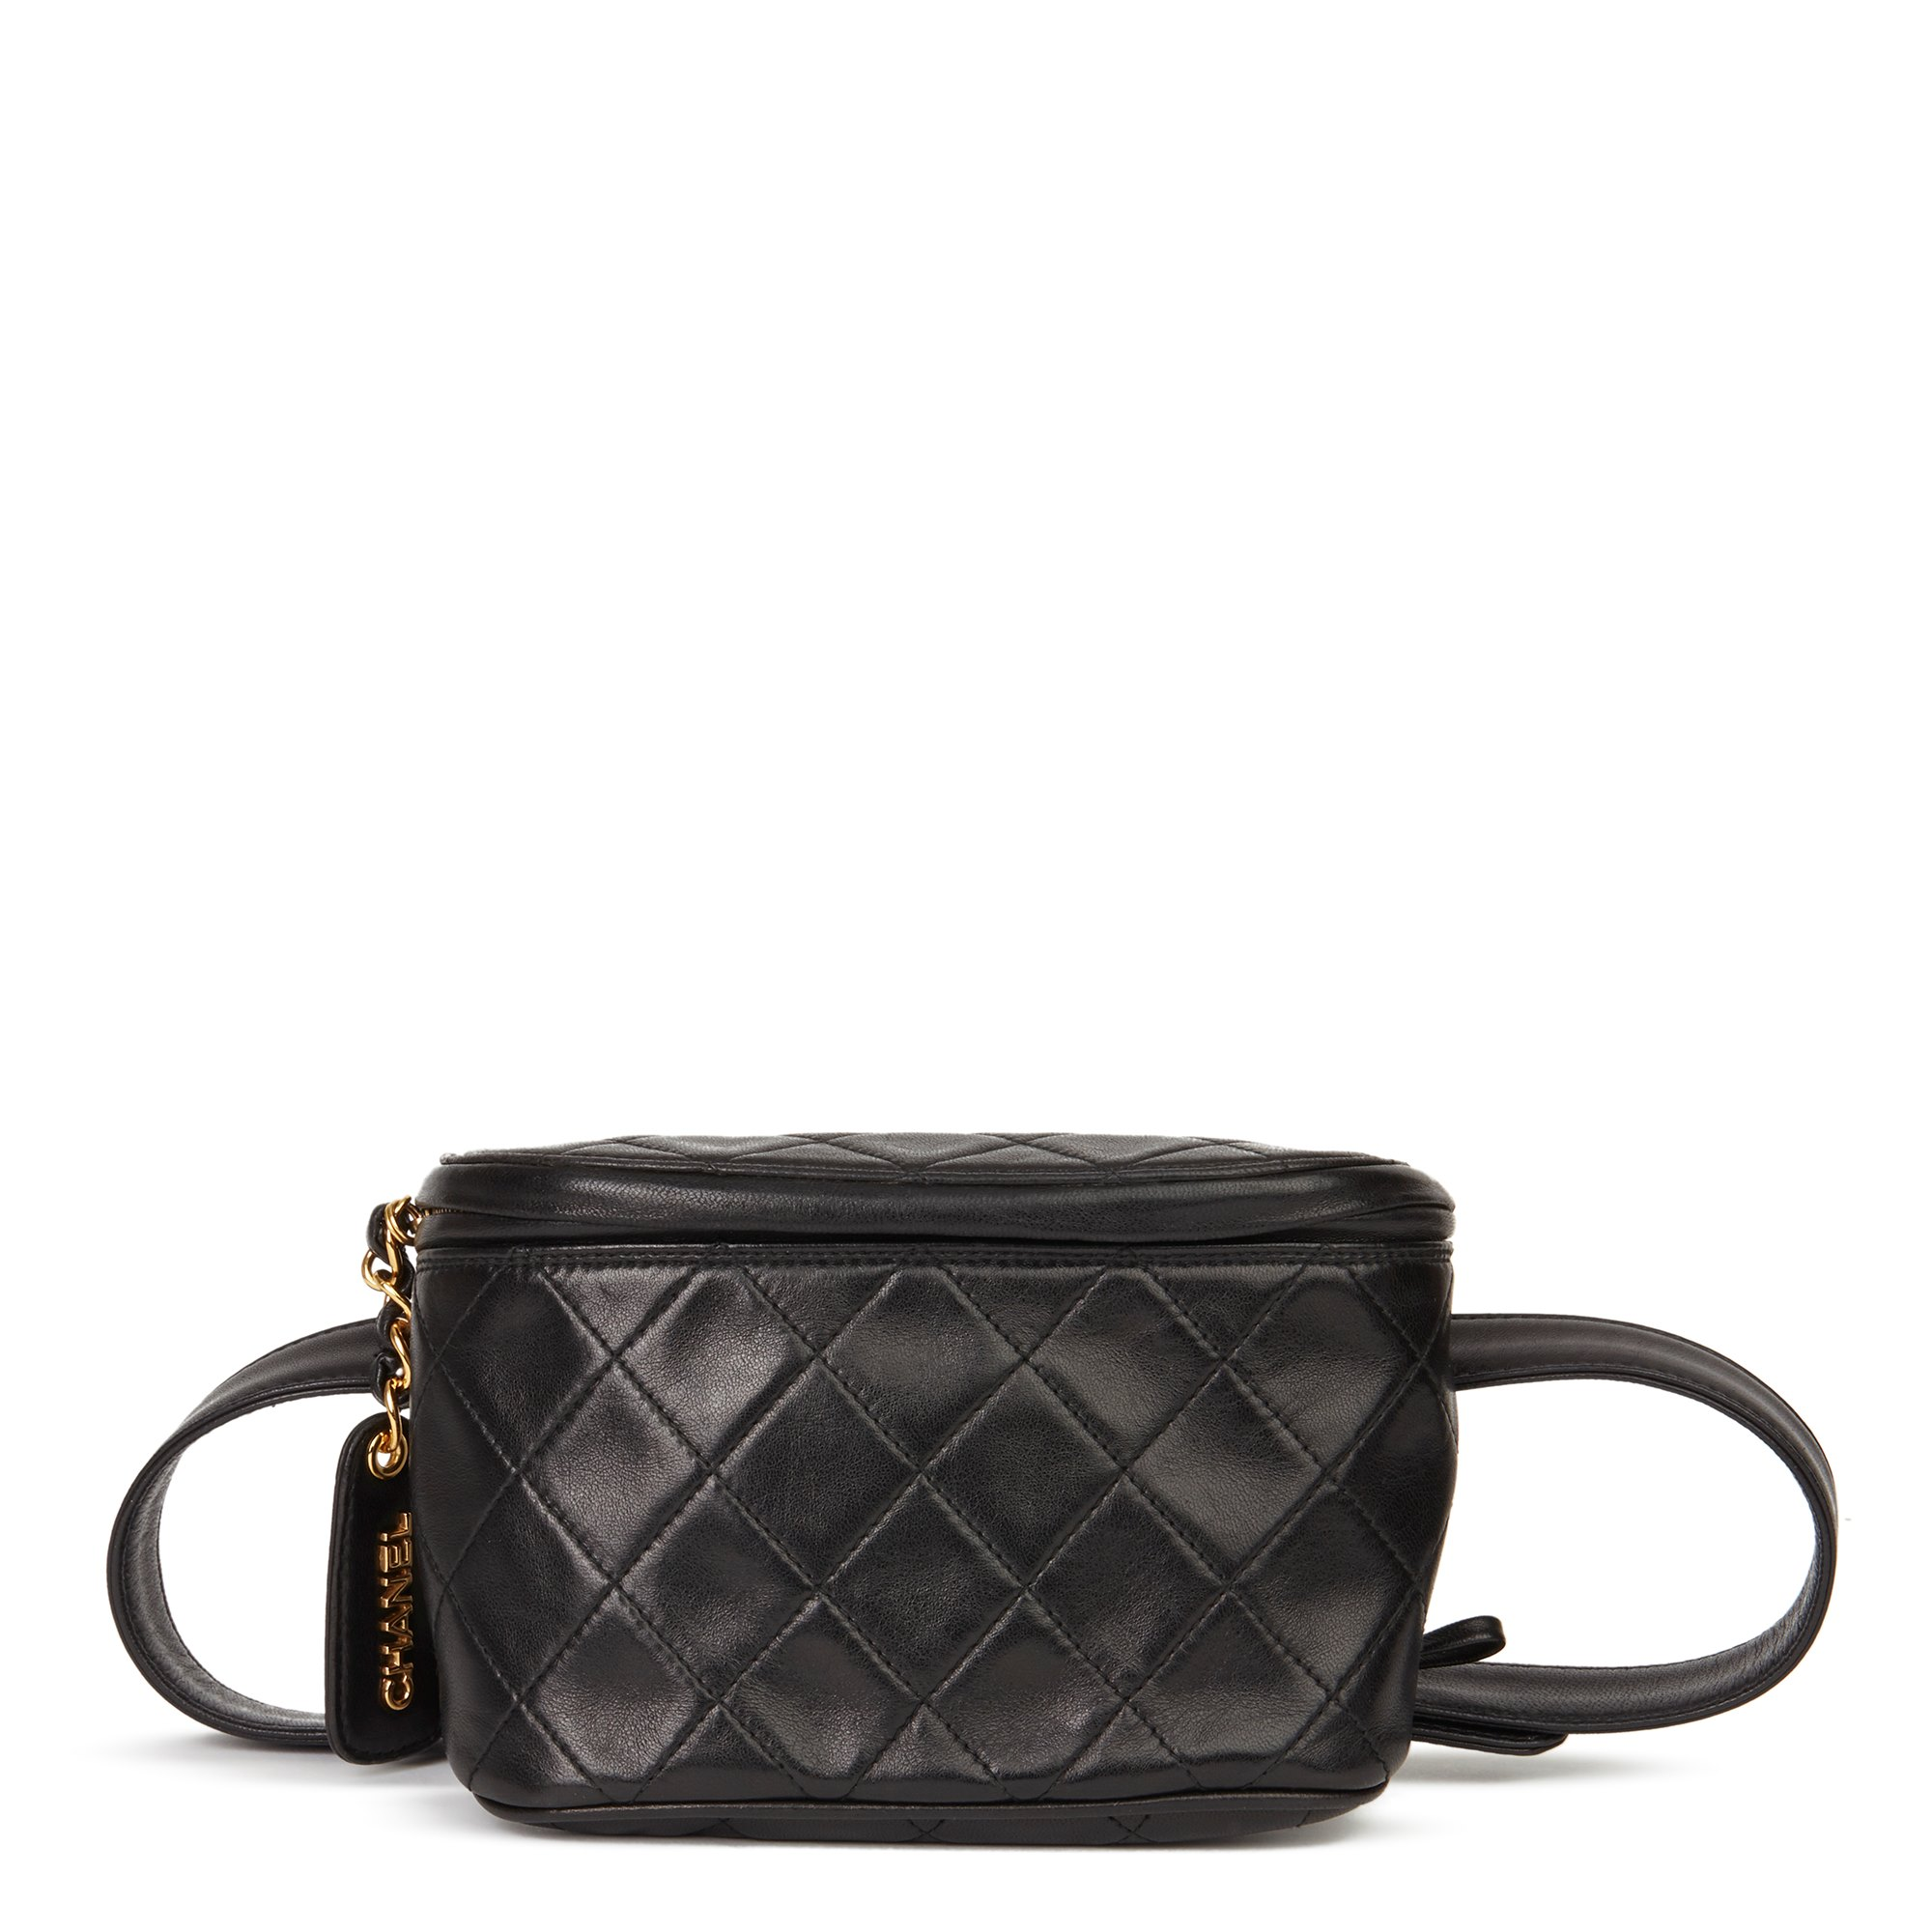 Chanel Black Quilted Lambskin Vintage Timeless Belt Bag